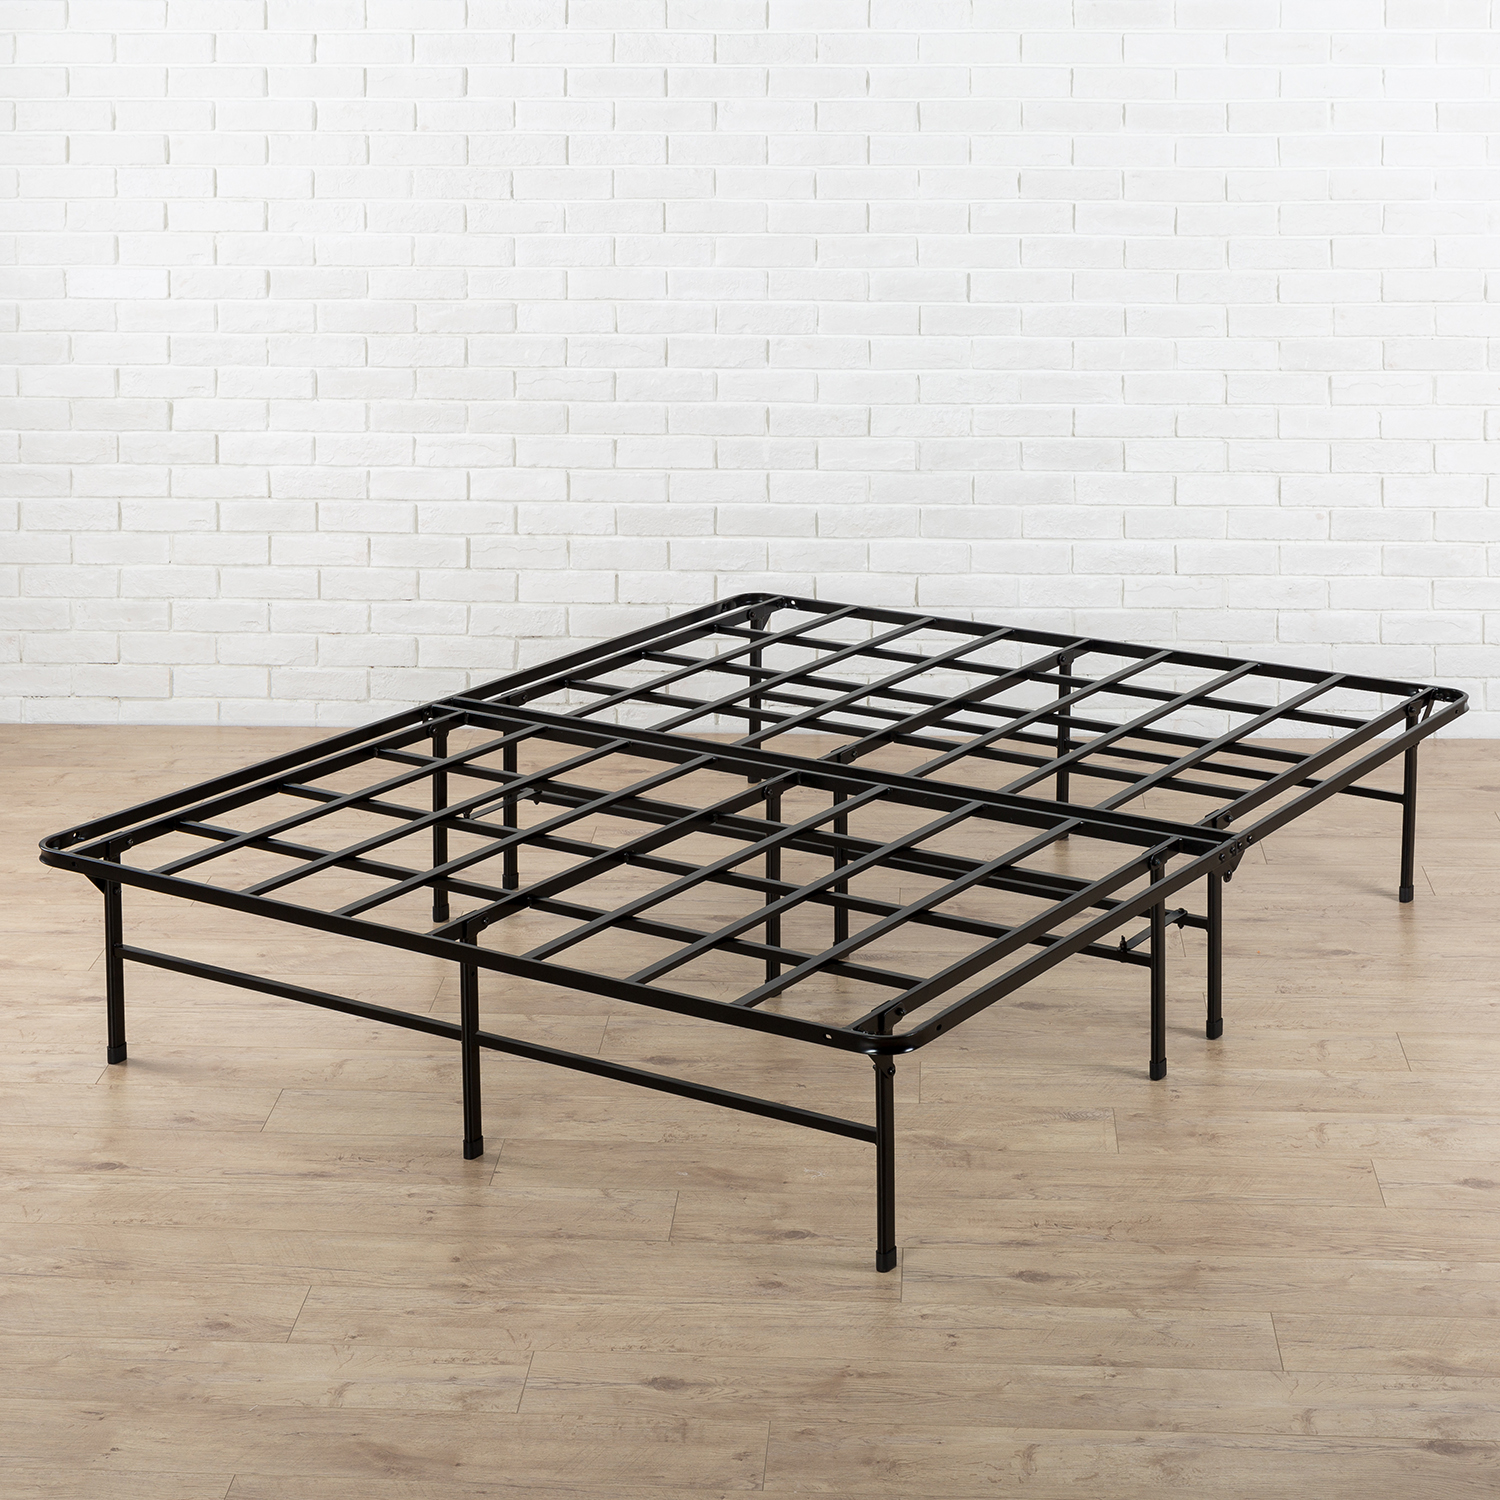 """Spa Sensations by Zinus 14"""" High Profile Foldable Elite Steel Smart Base Bed Frame with Under-Bed Strorage, Easy No Tools Assembly, Multiple Sizes"""